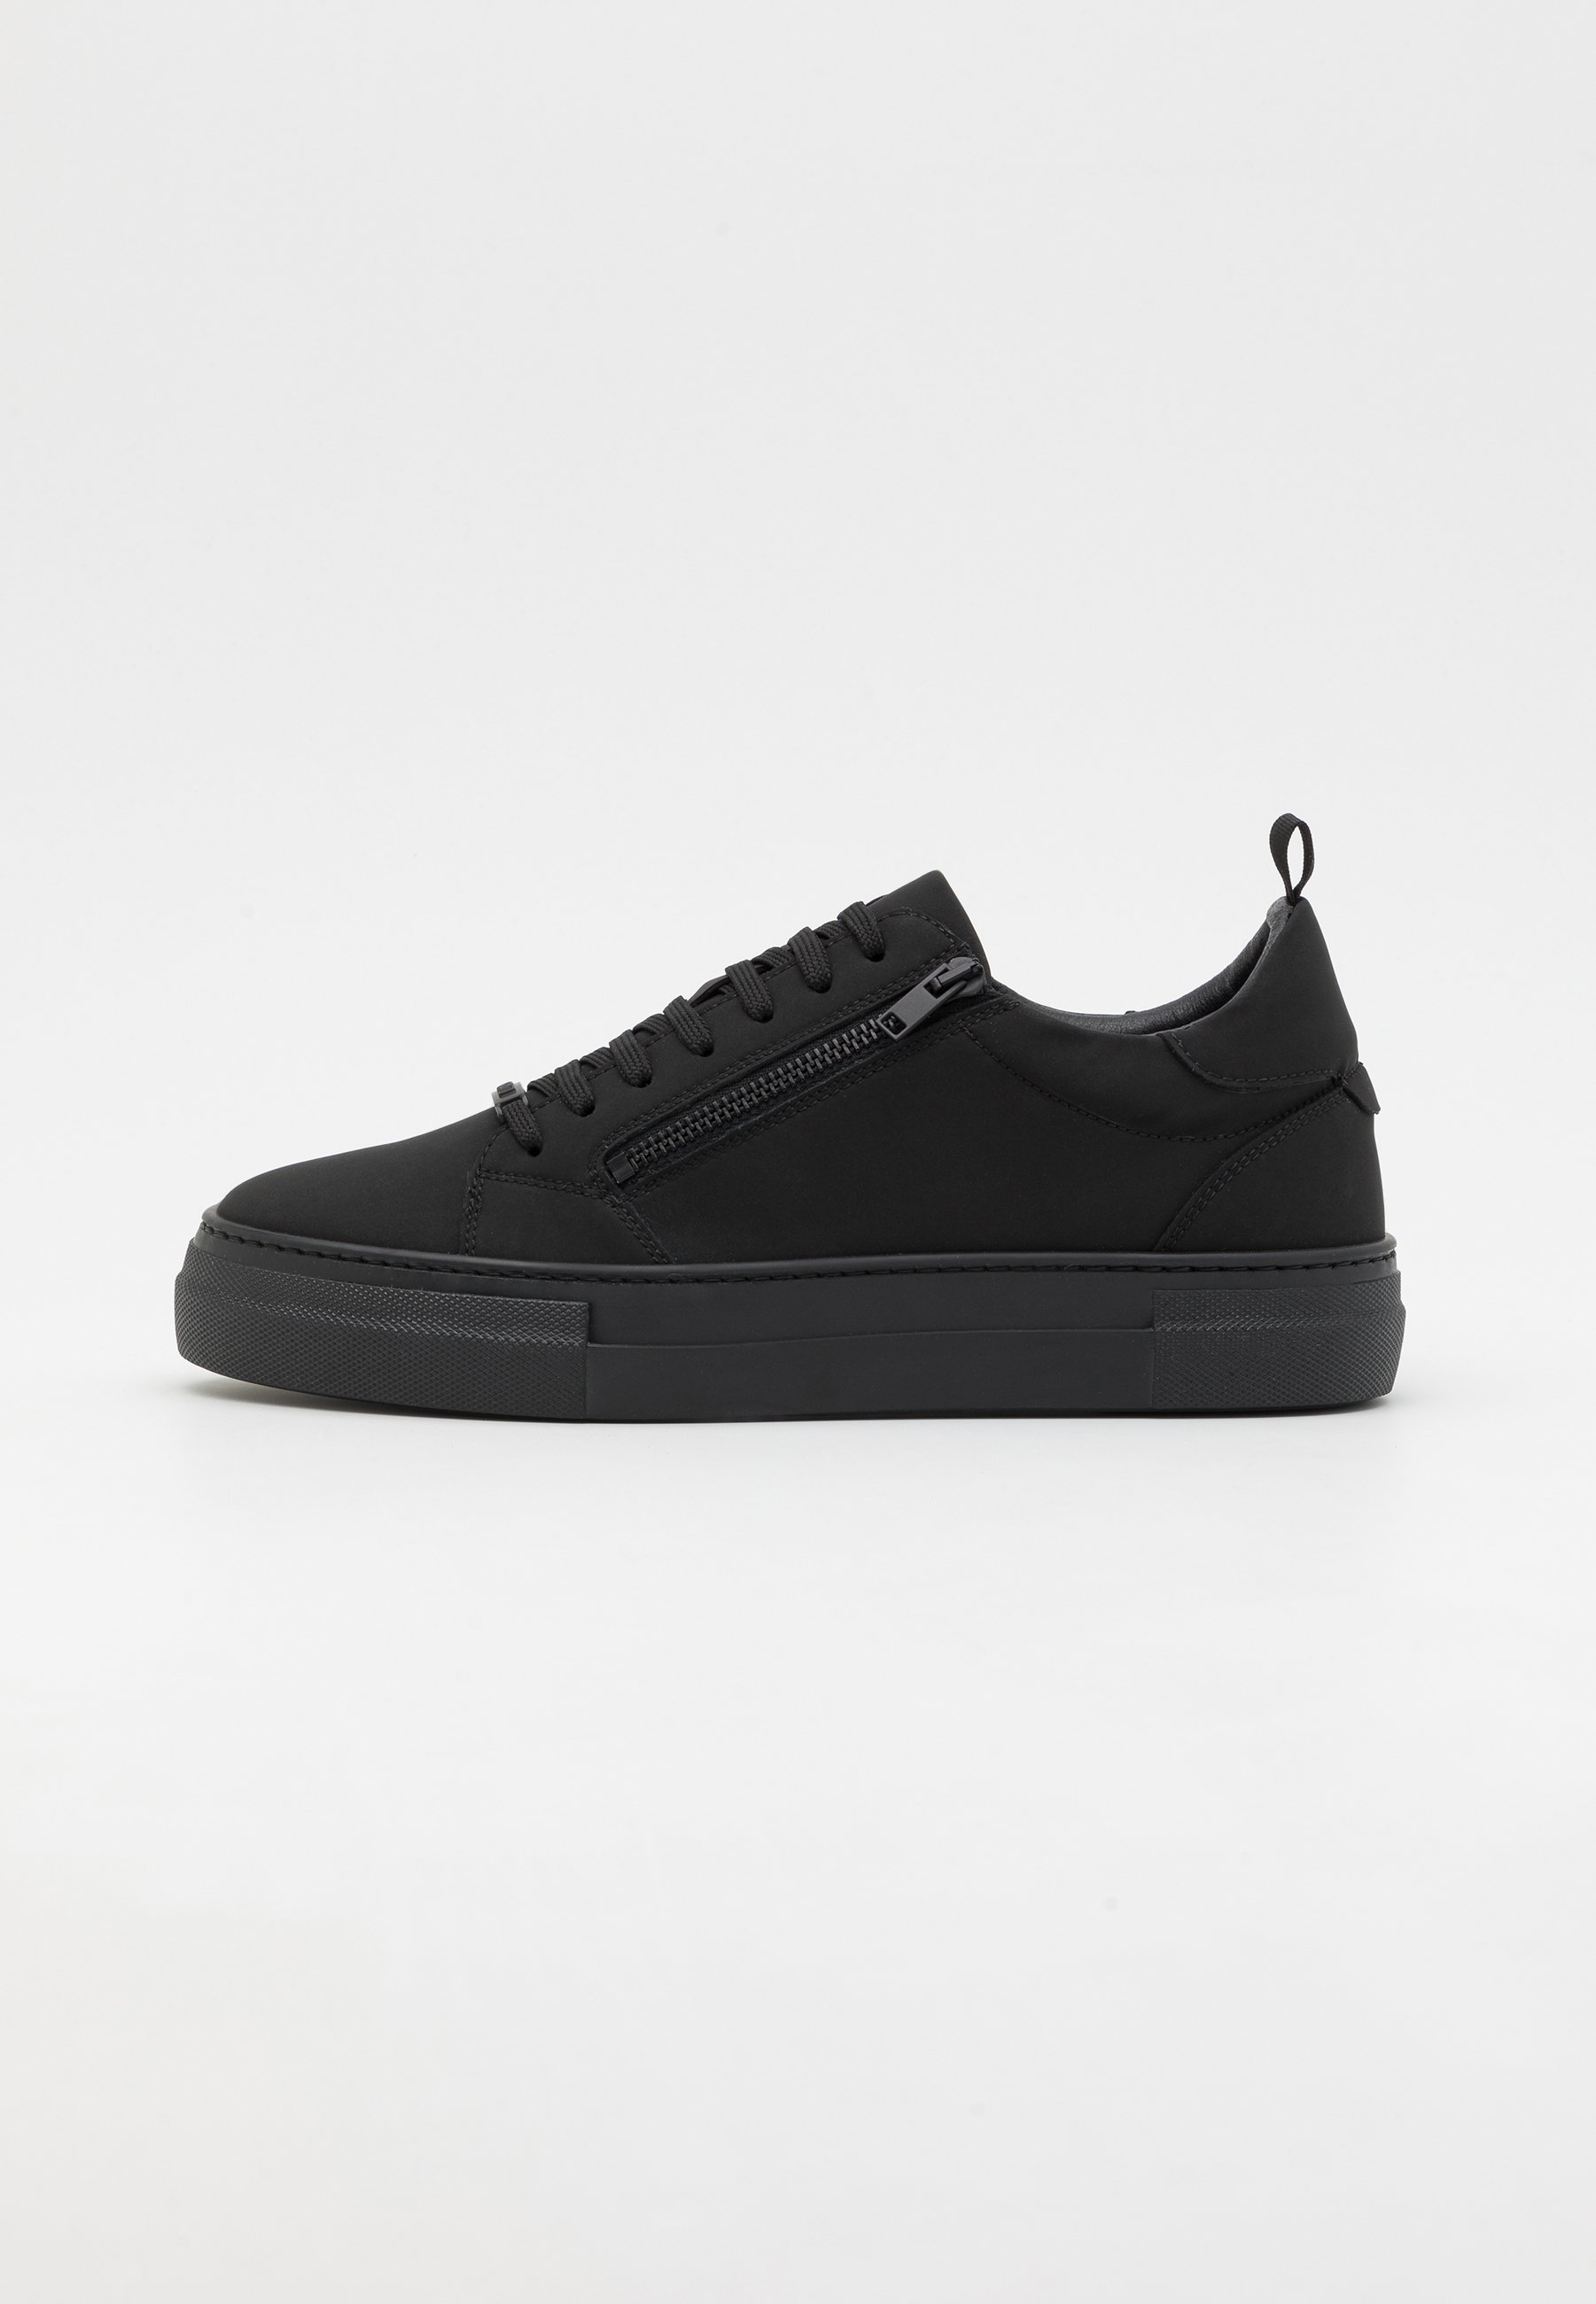 Homme ZIPPER LACE UP IN RECYCLED PLATFORM - Baskets basses